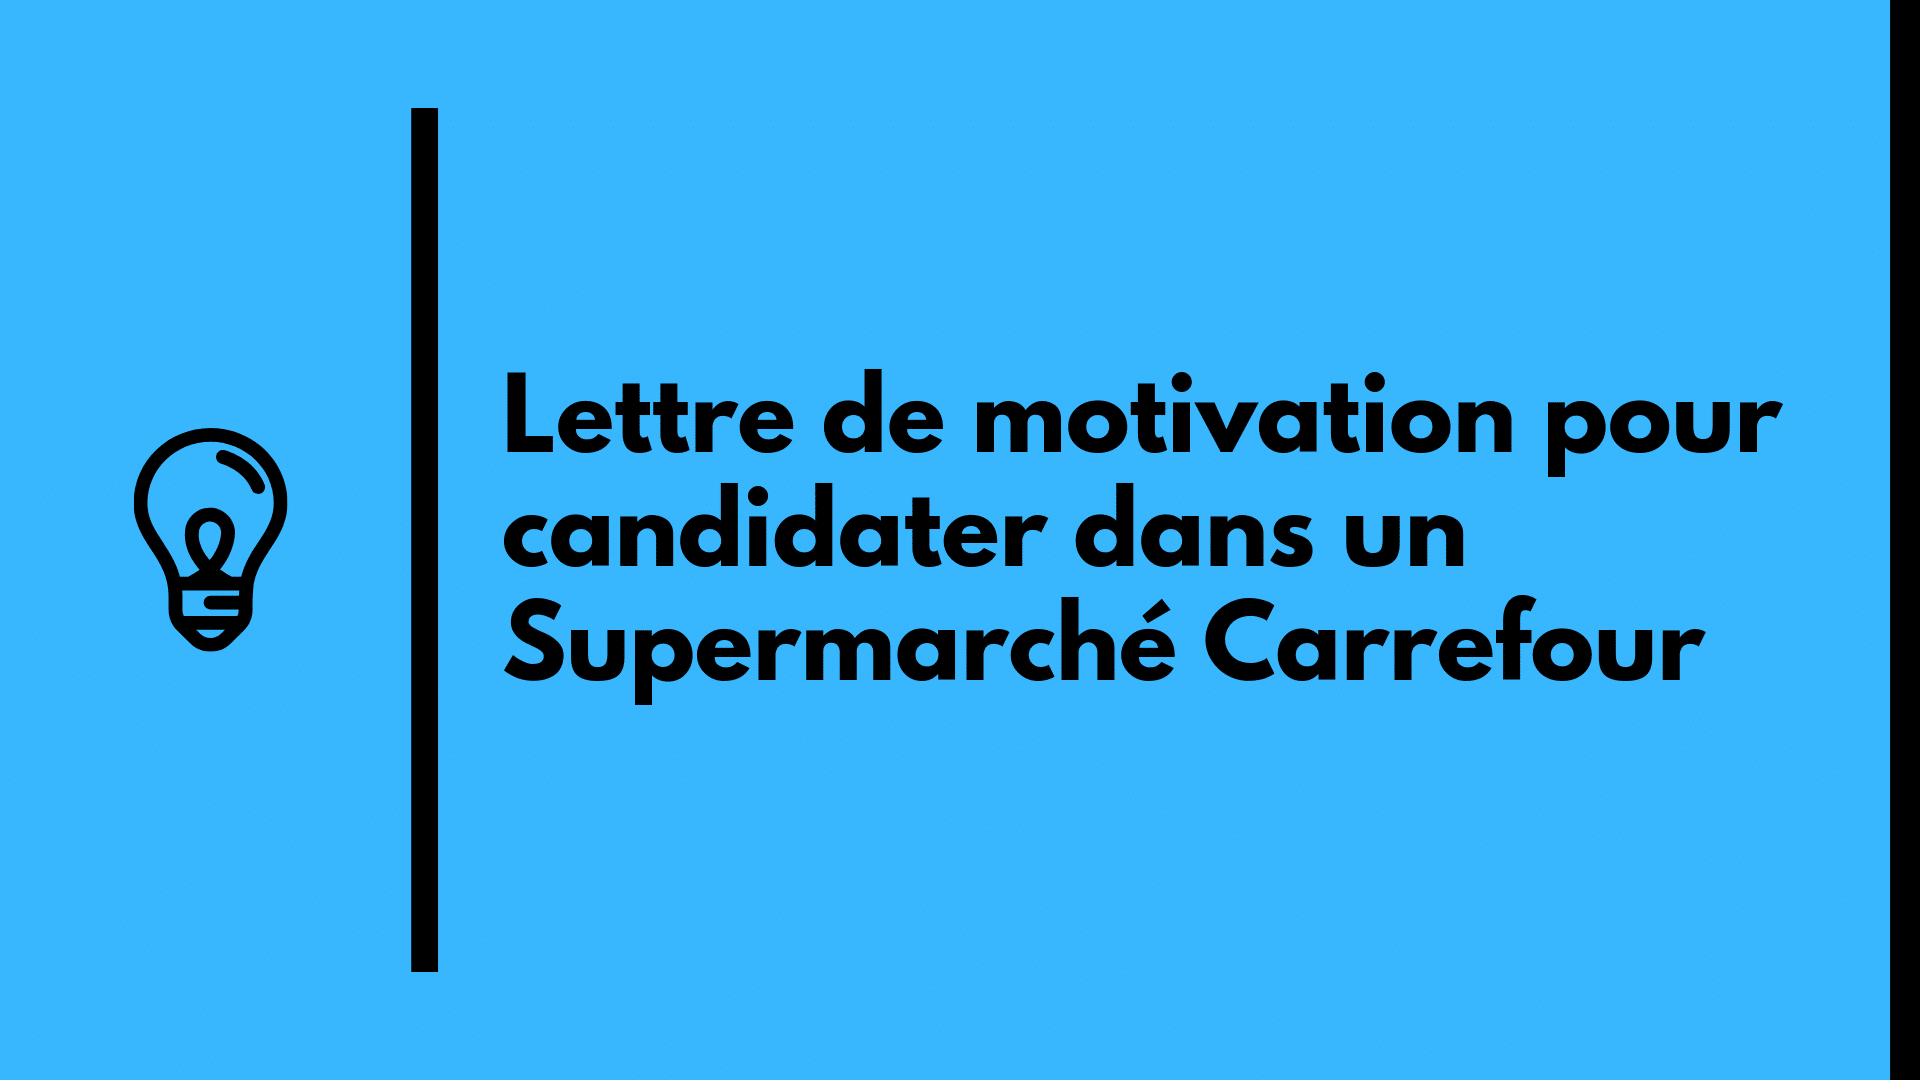 lettre de motivation carrefour